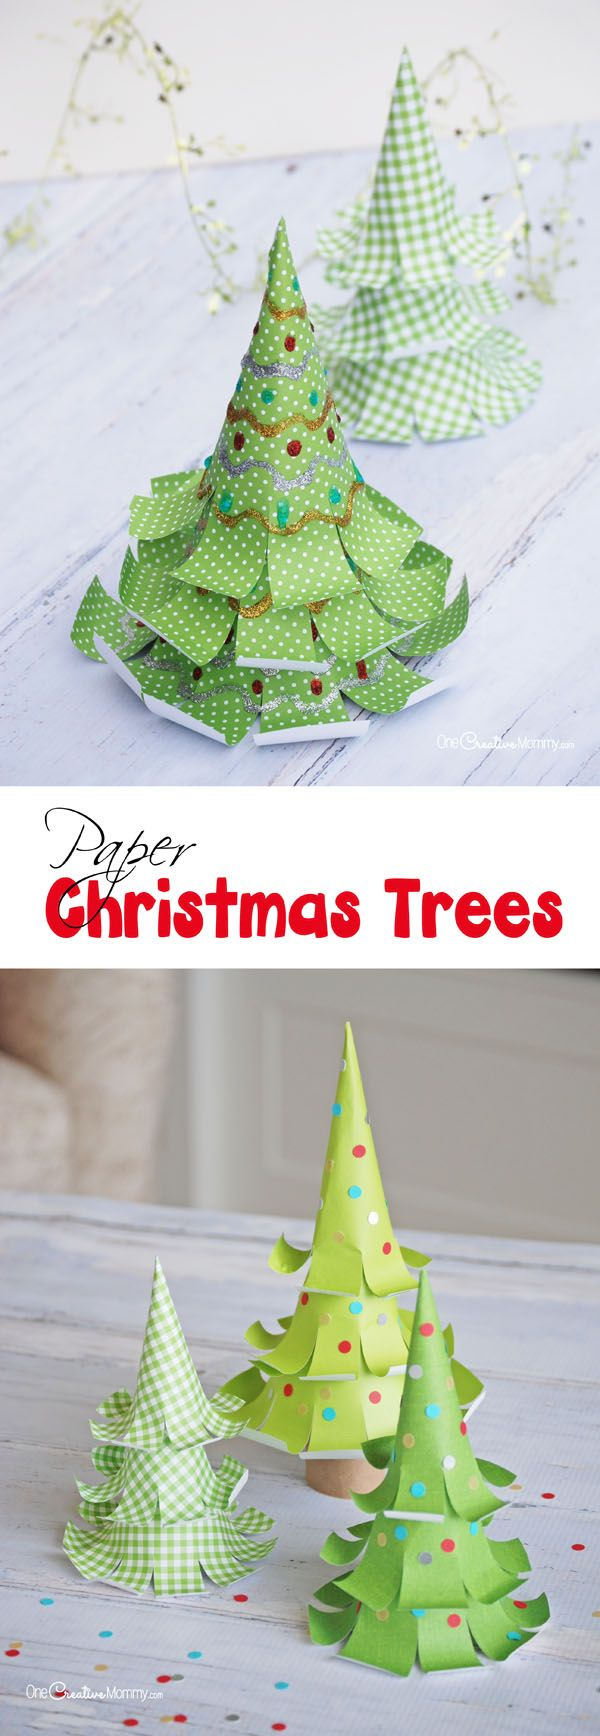 103 best images about winter crafts diys for adults on for Christmas paper crafts for adults